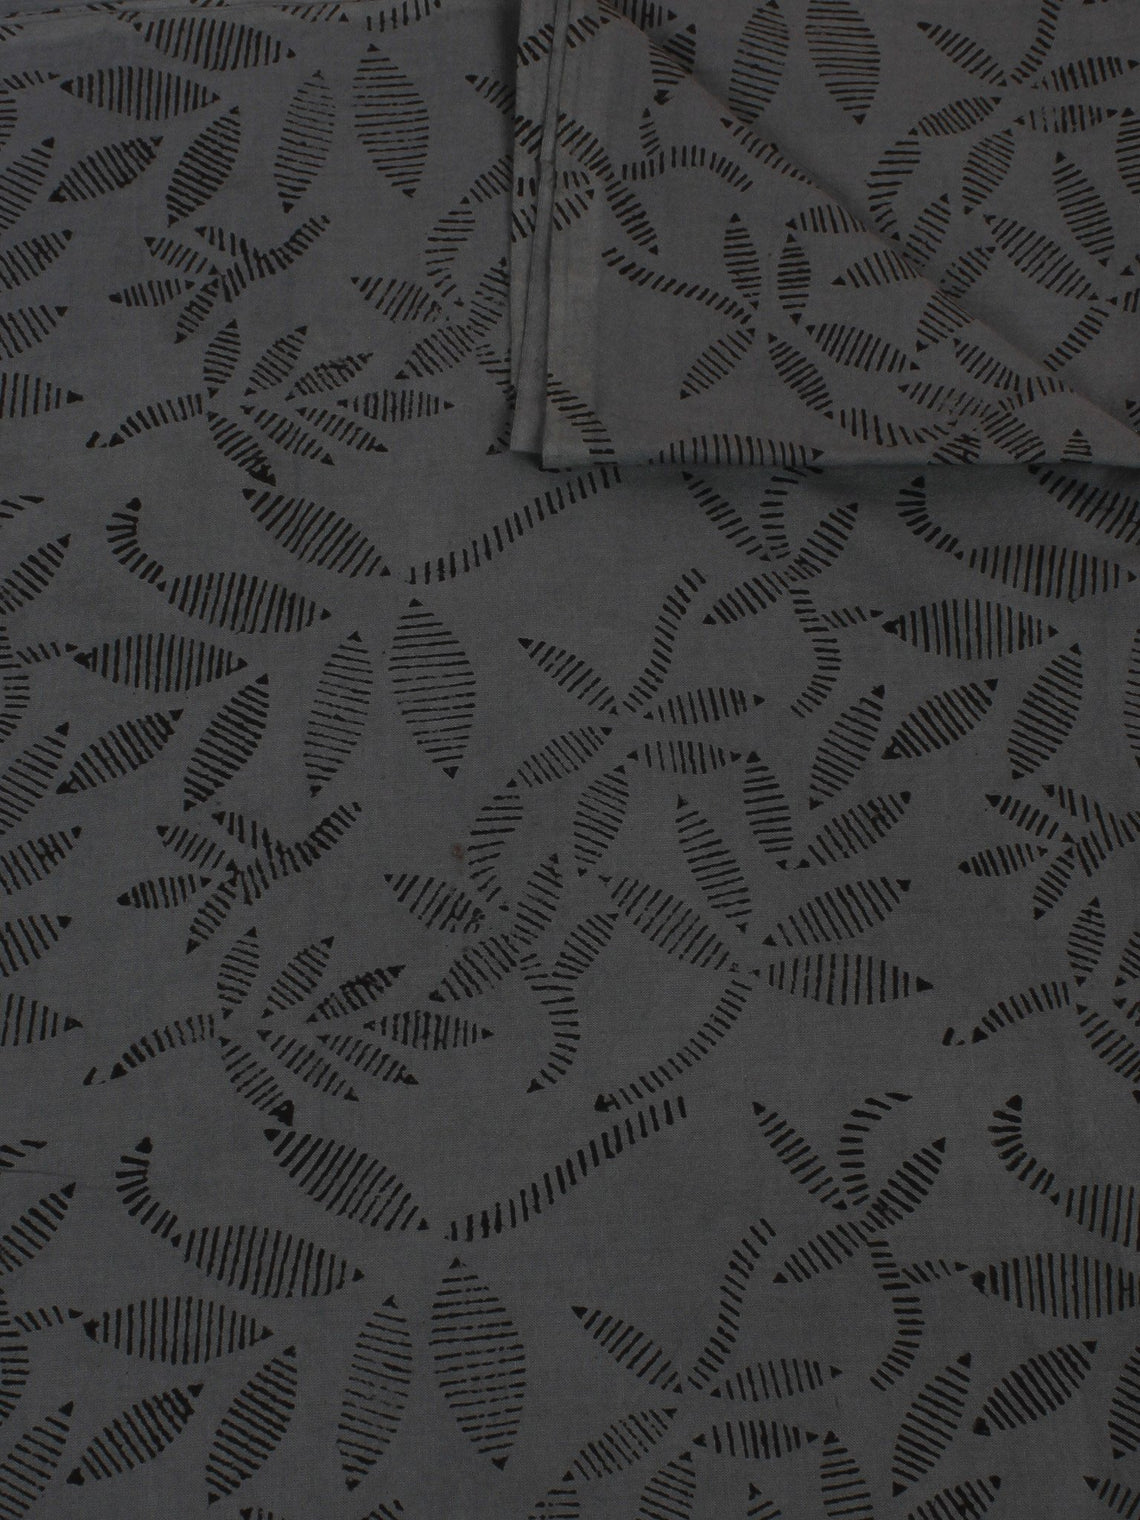 Grey Black Hand Block Printed Cotton Cambric Fabric Per Meter - F0916129